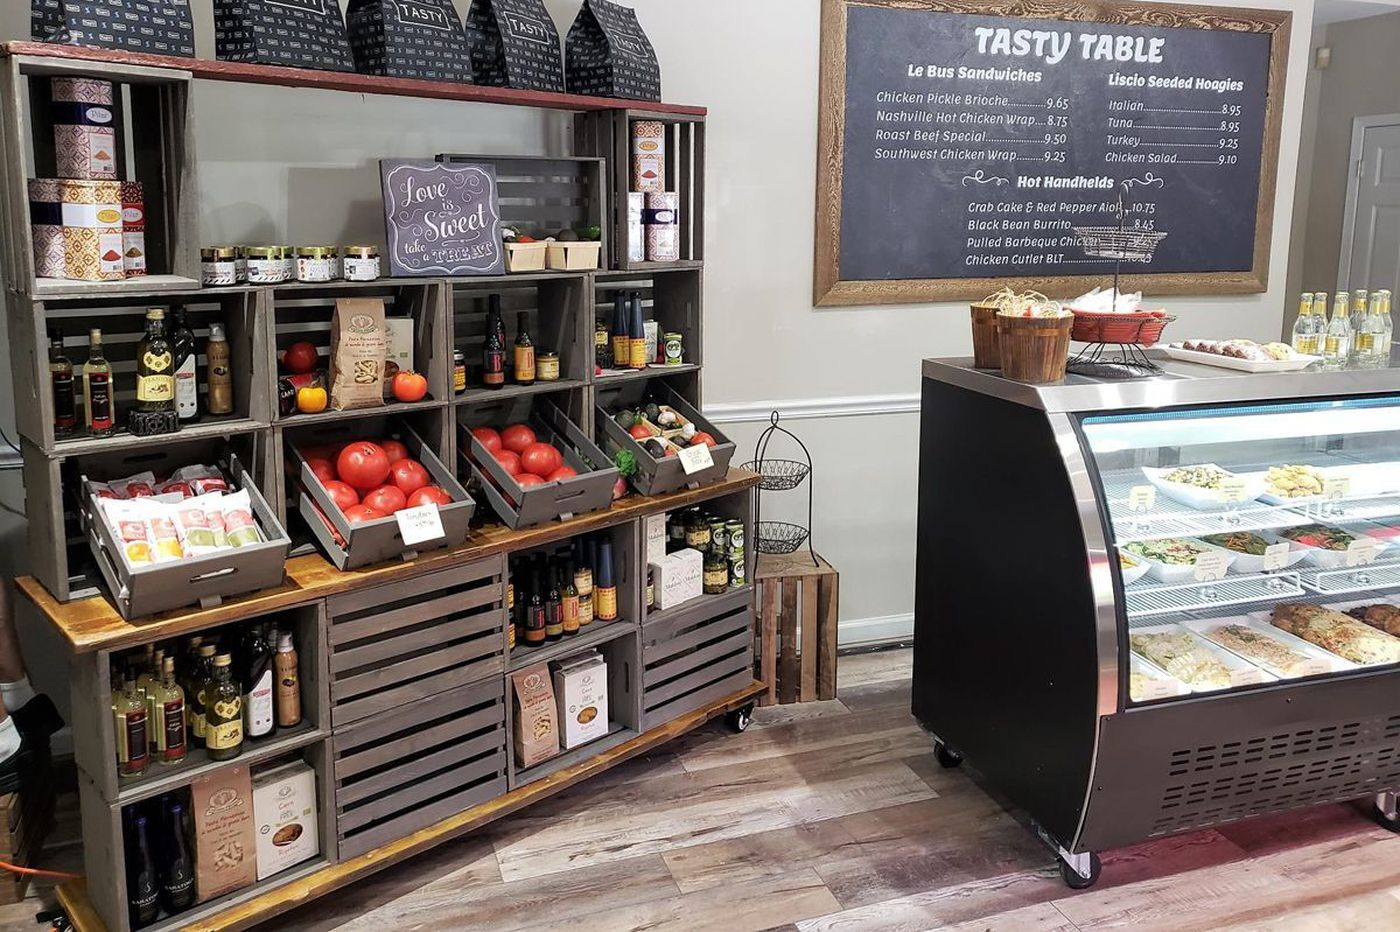 Main Line caterer Tasty Table opens a market for takeout and pantry staples